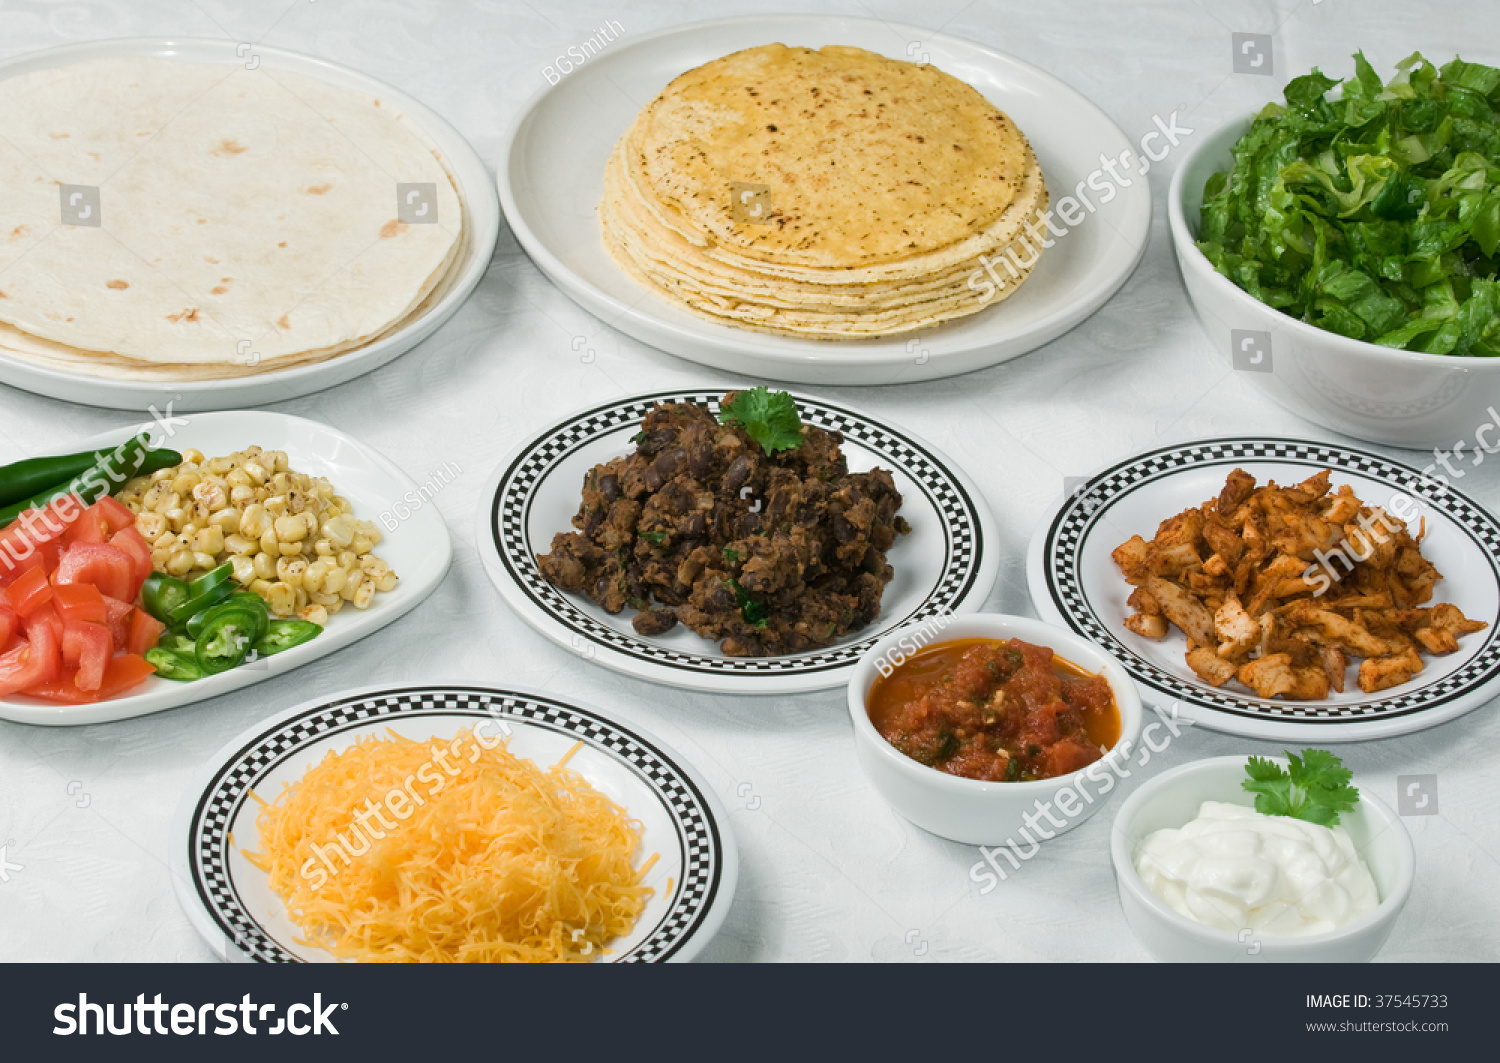 Dinner table with mexican food - Table Set With Mexican Ingredients For Taco Or Burrito Dinner